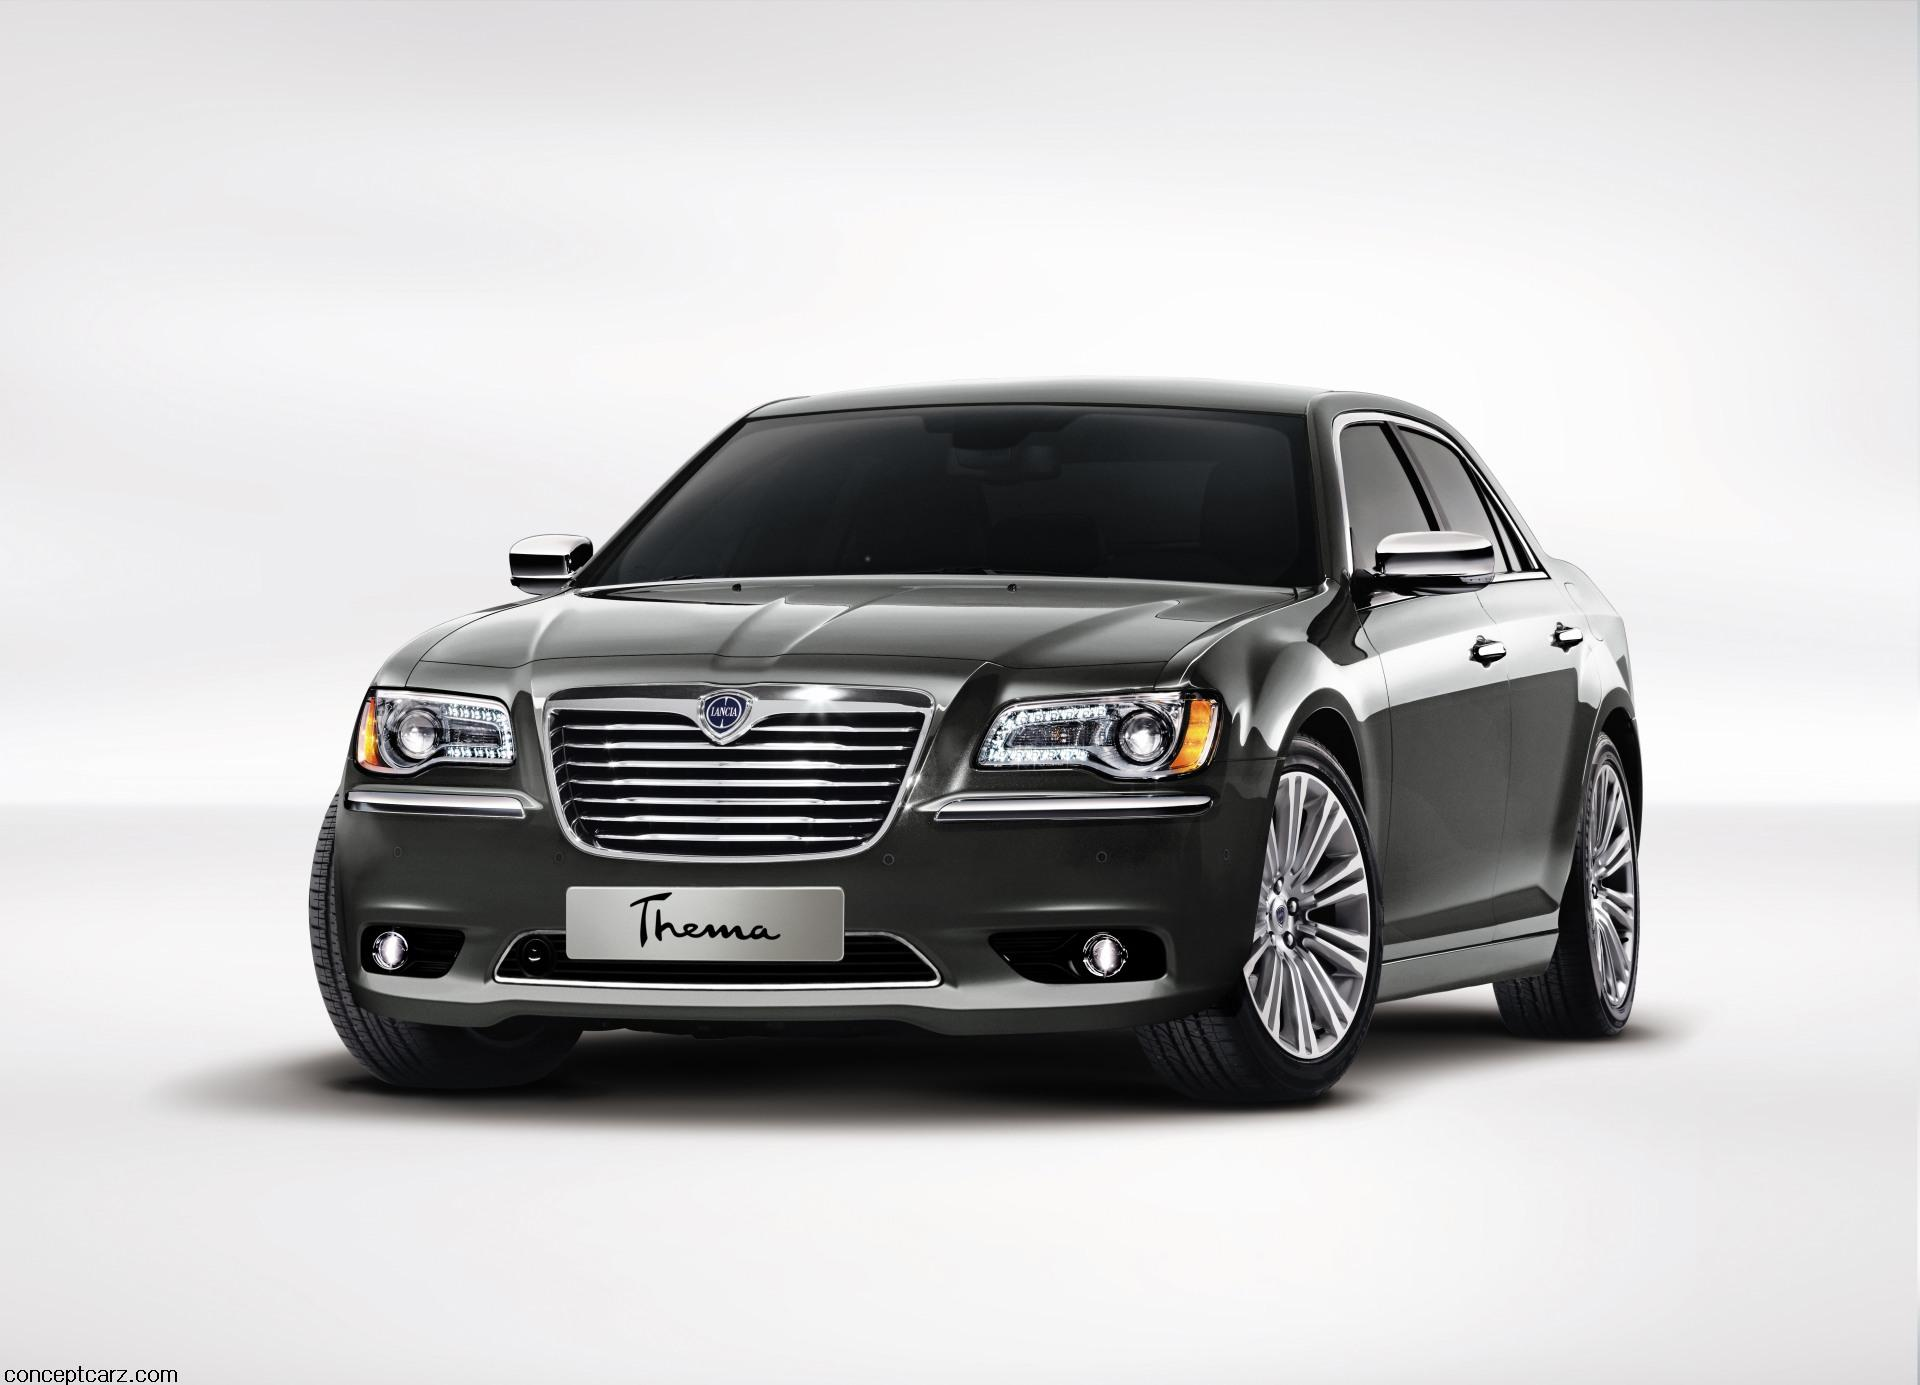 Lancia Thema pictures and wallpaper